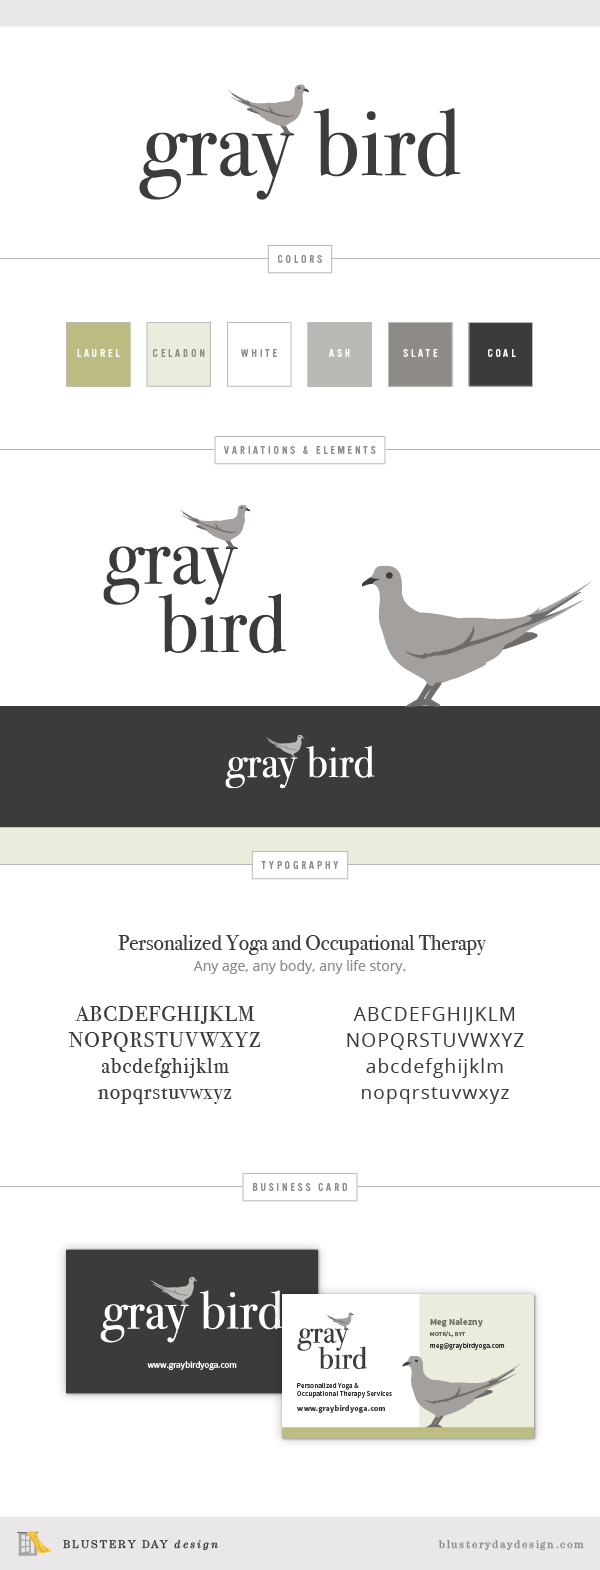 Gray Bird Yoga Mood Board